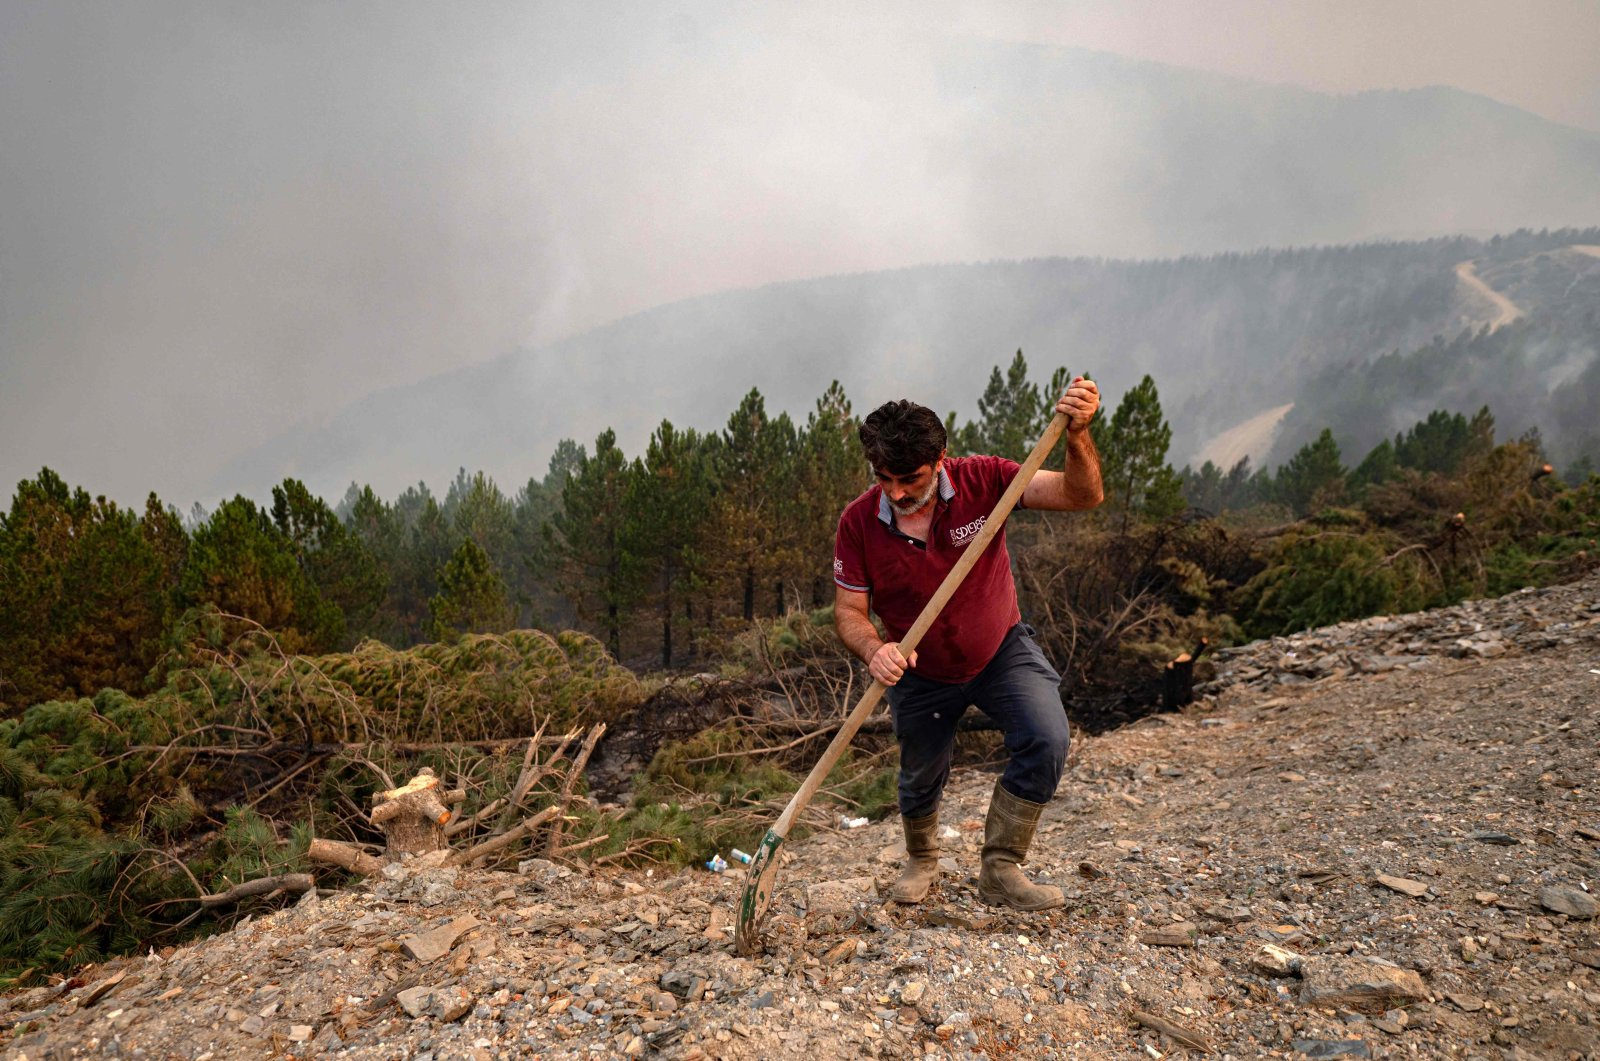 A volunteer from a nearby village uses a shovel to help contain smouldering forest fires in the hills of a recently burnt area near Kavaklıdere, a district of Muğla province, Turkey, Aug. 5, 2021. (AFP Photo)